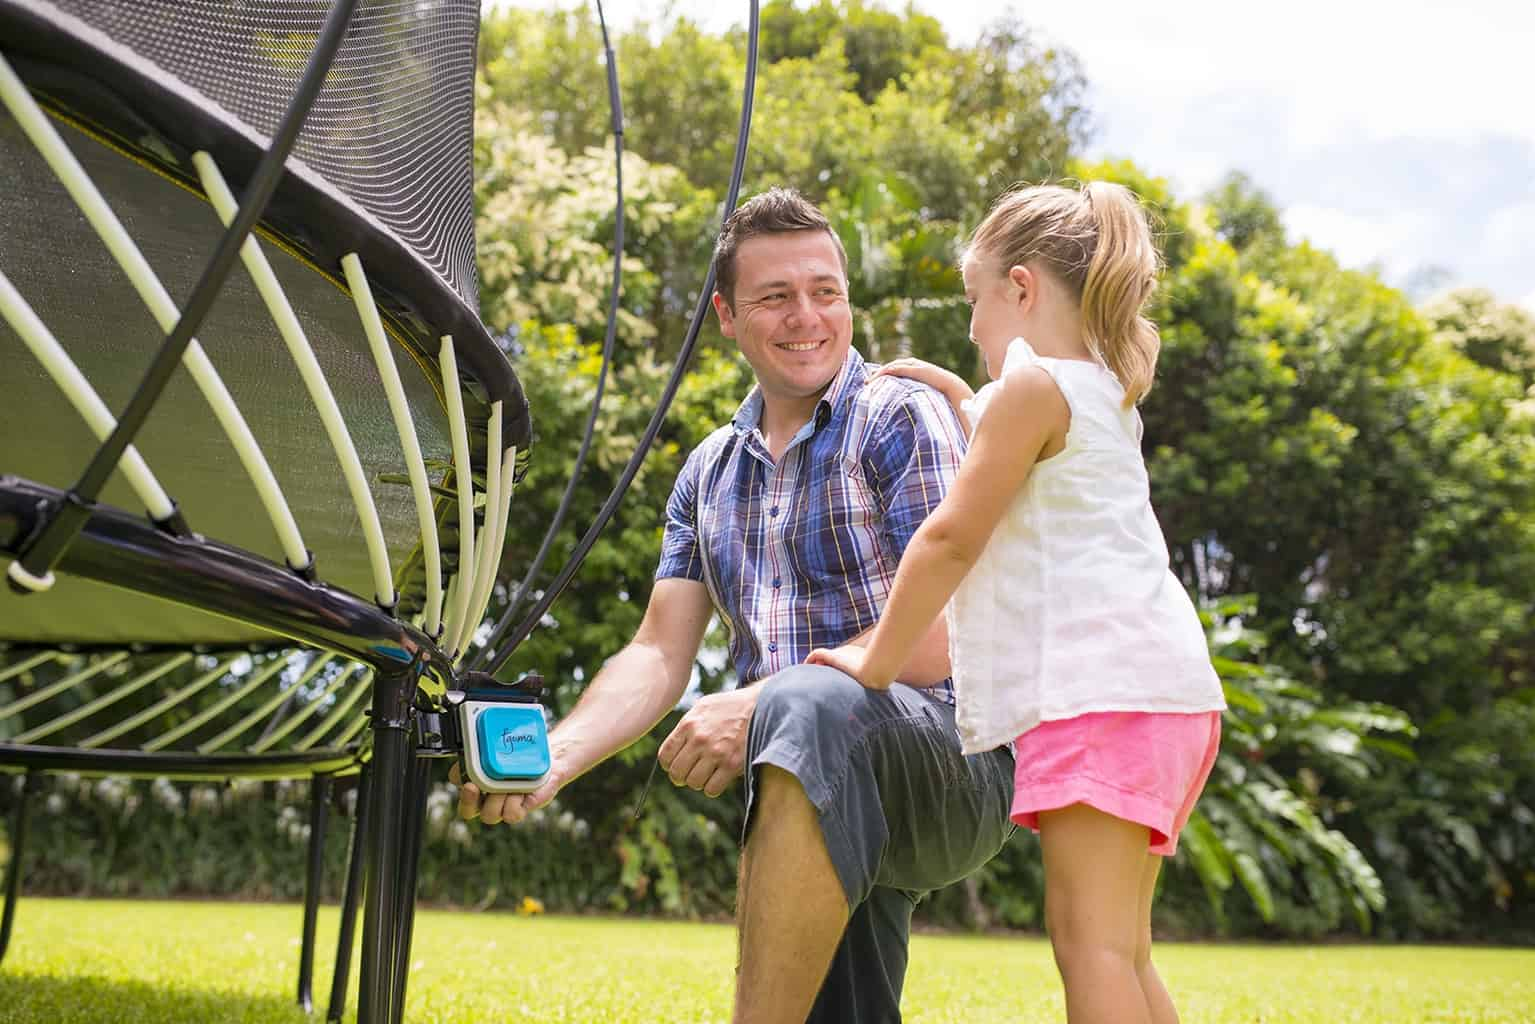 Tgoma Gaming System for Springfree Trampoline